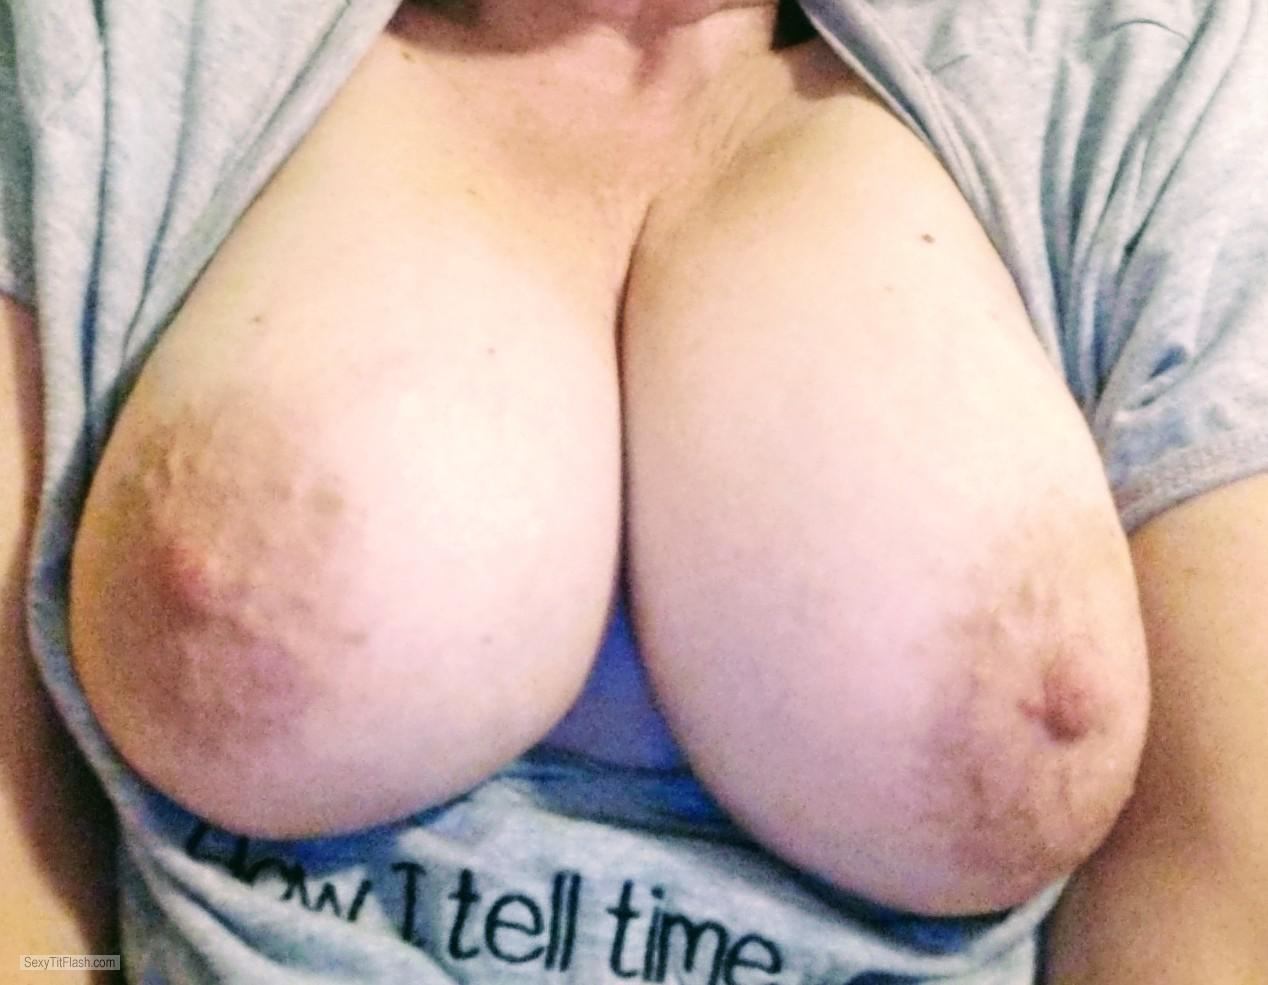 Tit Flash: My Tanlined Very Big Tits (Selfie) - MILF123 from United States